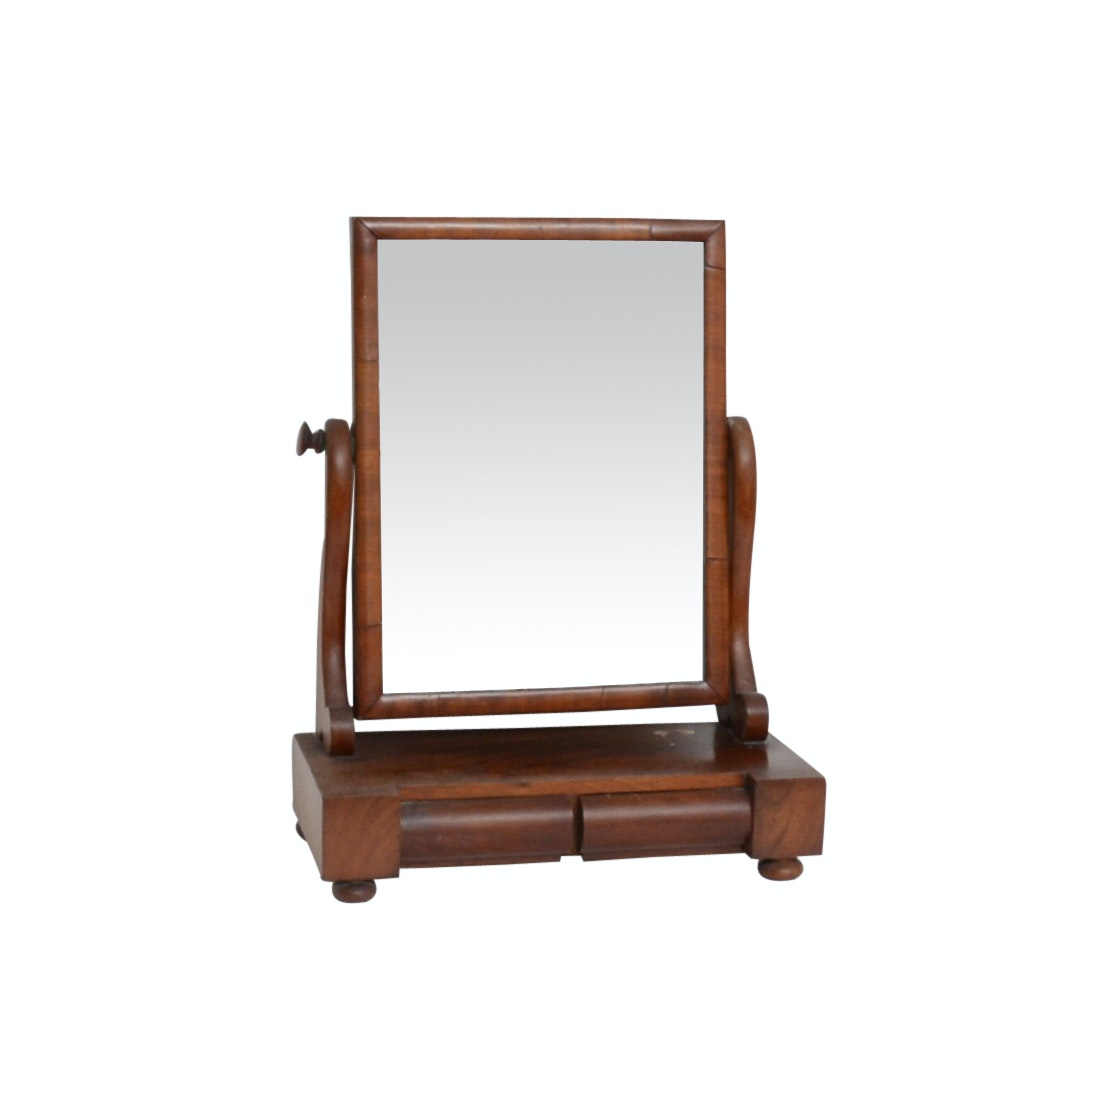 Gentleman's Dressing Mirror